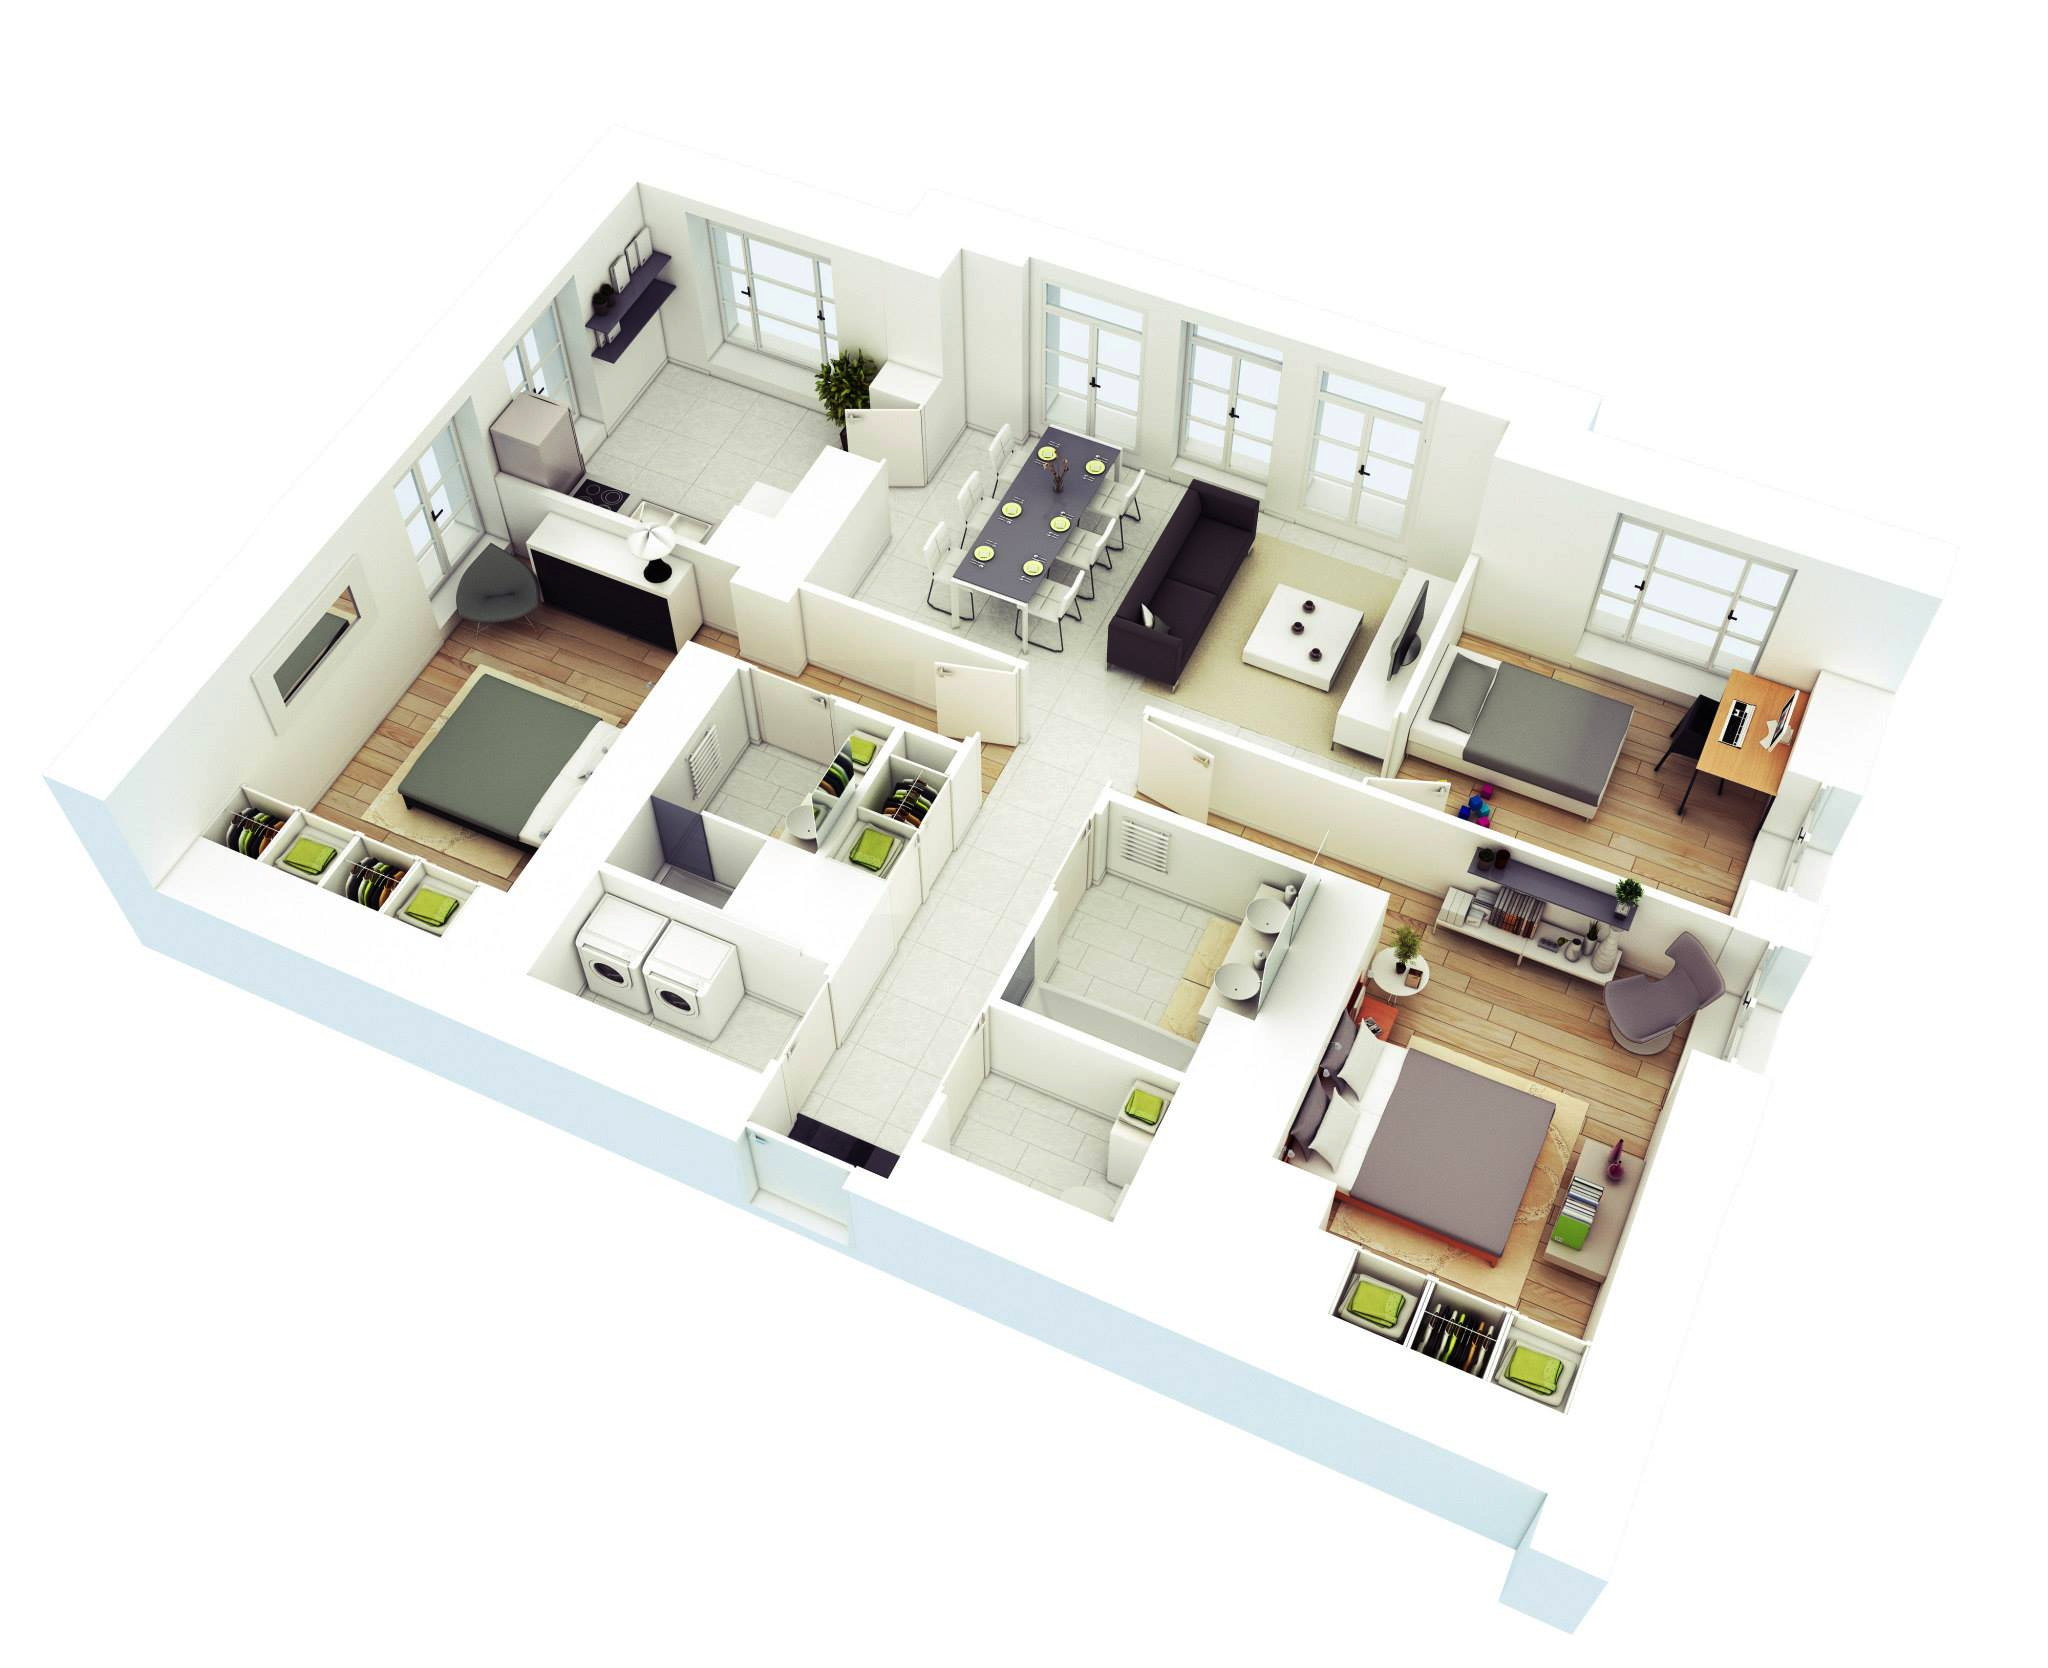 25 More 3 Bedroom 3D Floor Plans #0: three bedroom home